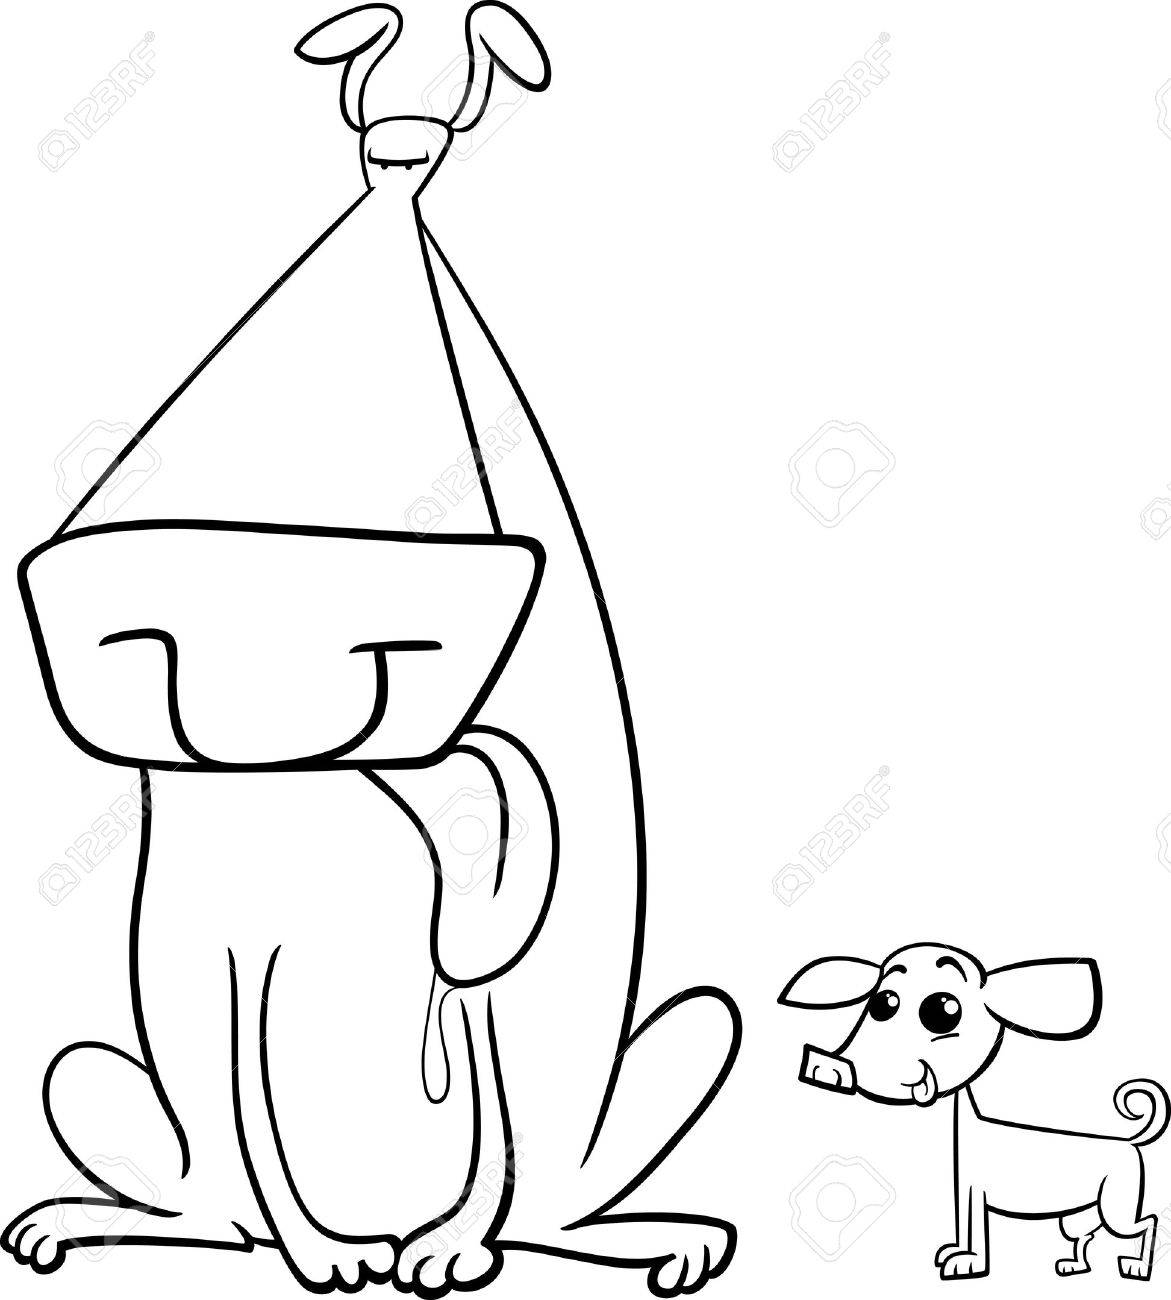 black and white cartoon illustration of big dog and small